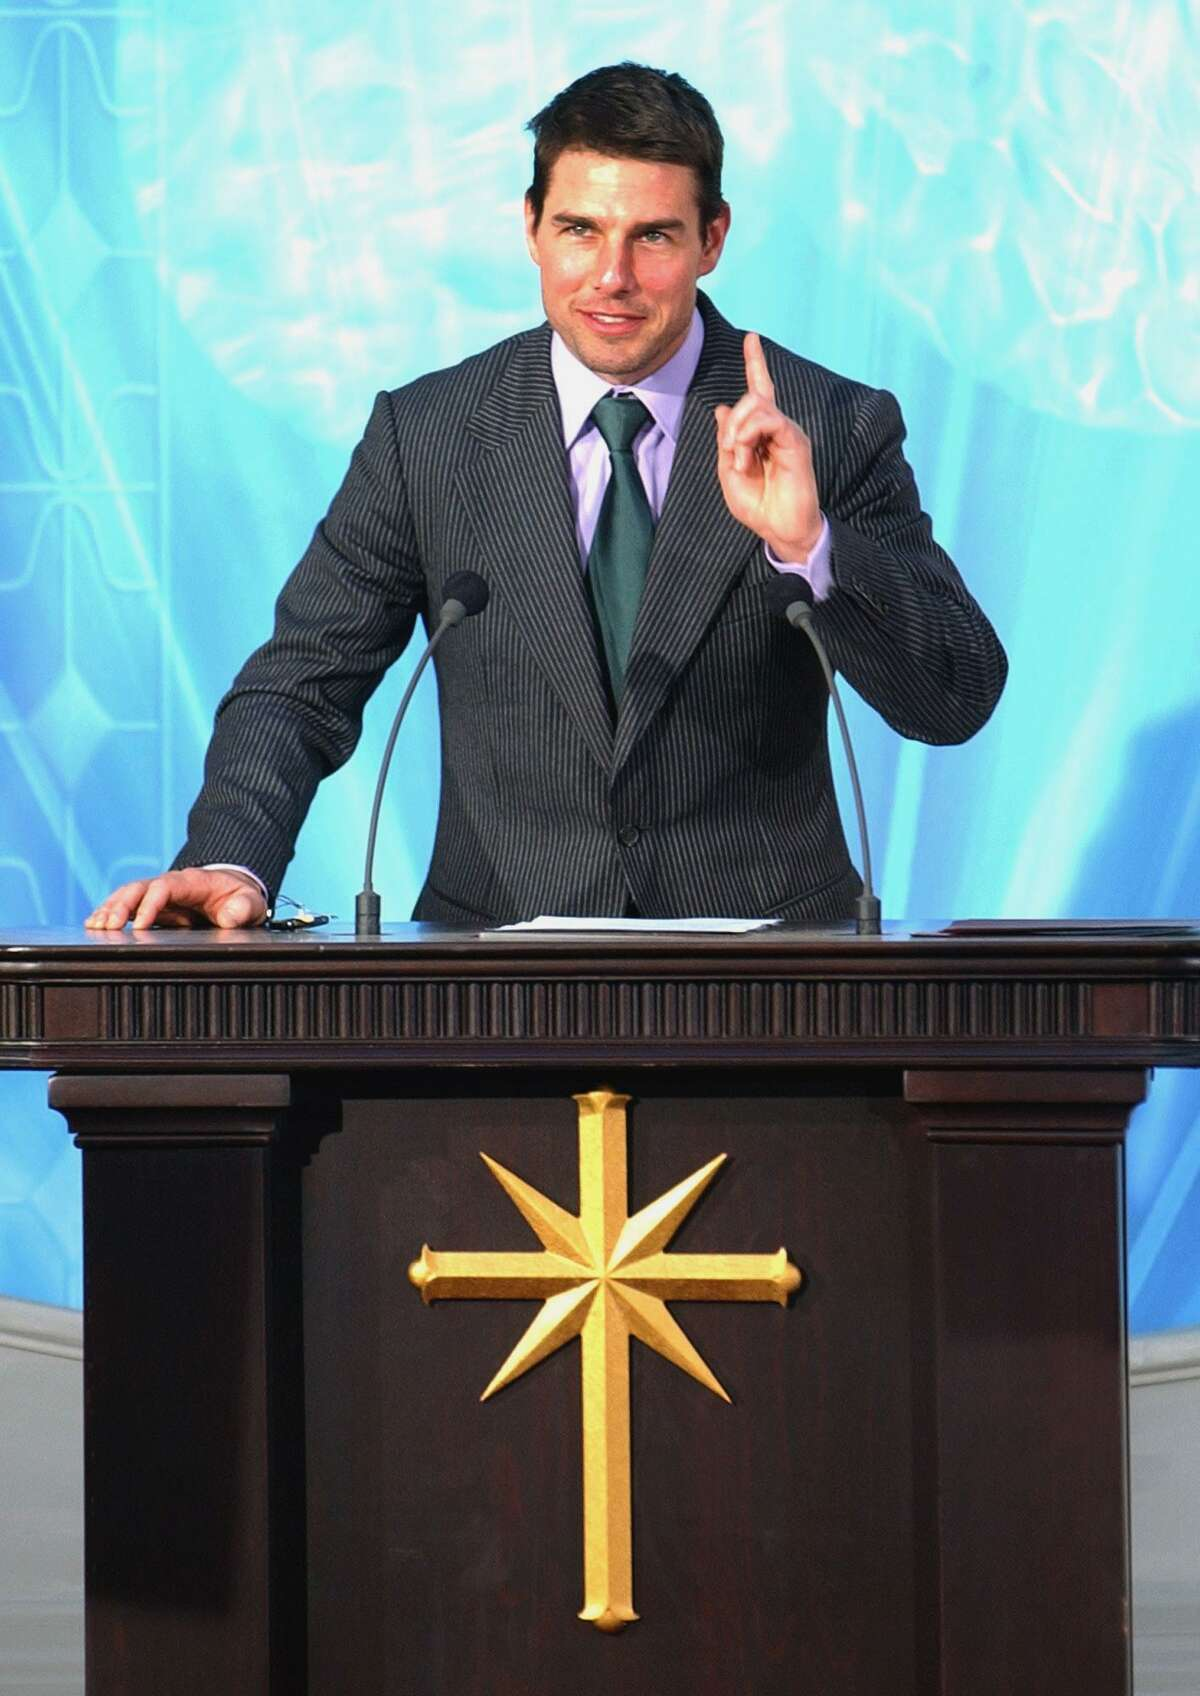 Tom Cruise makes a speech during the official opening of a new Scientology church in central Madrid in 2004.